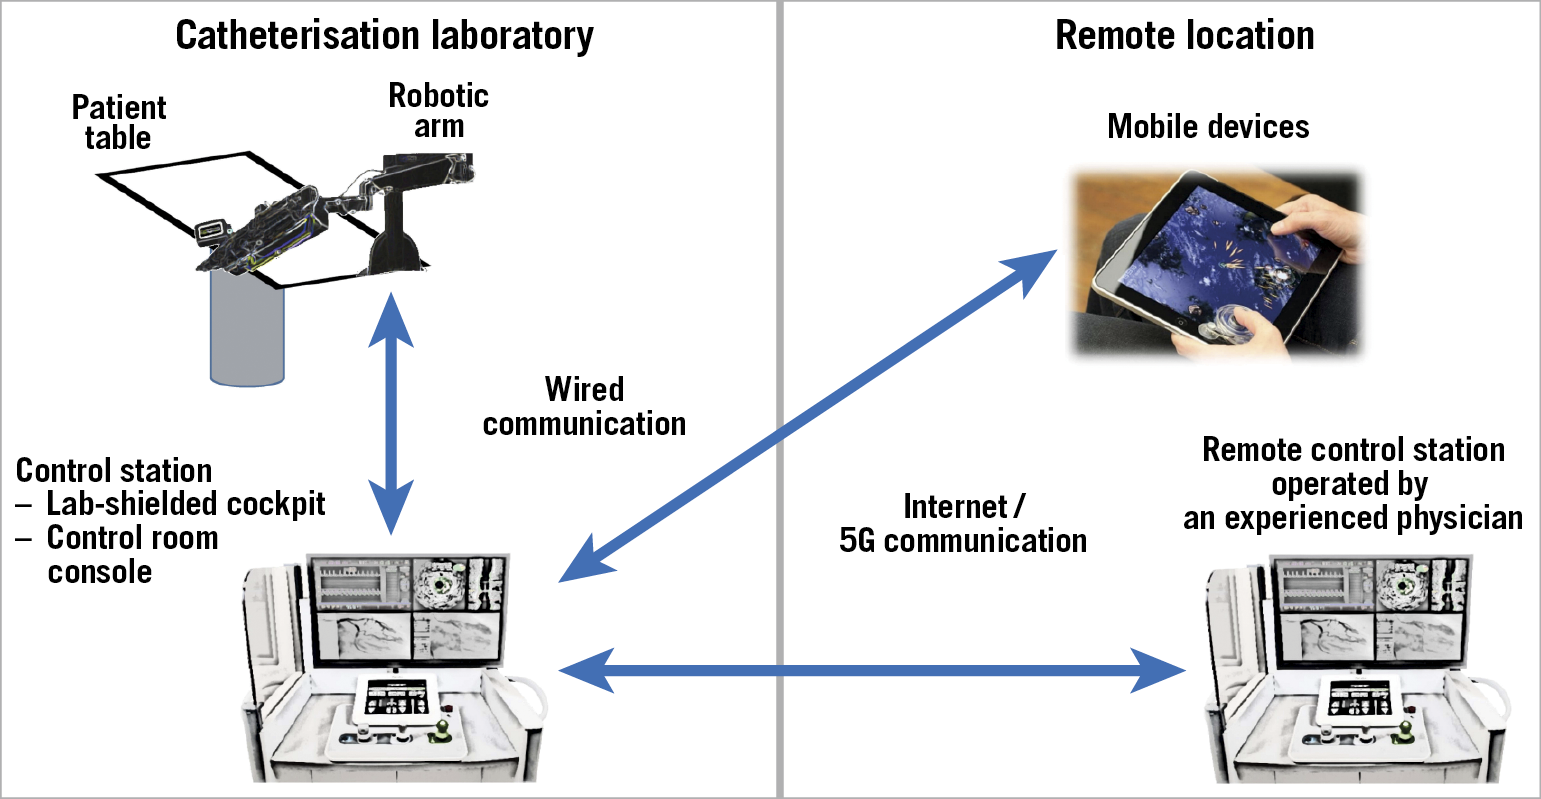 Figure 4. Local and remote schematics. The robotic arm, located in the catheterisation laboratory, is hard-wired to the control station, which can be placed either in the catheterisation laboratory or in the control room, according to the operator's preference. A second remote control unit, which can also be installed on a mobile device, is connected through the internet or a 5G wireless connection and can be placed in any other location (i.e., either elsewhere in the same or a different hospital, or any location worldwide).